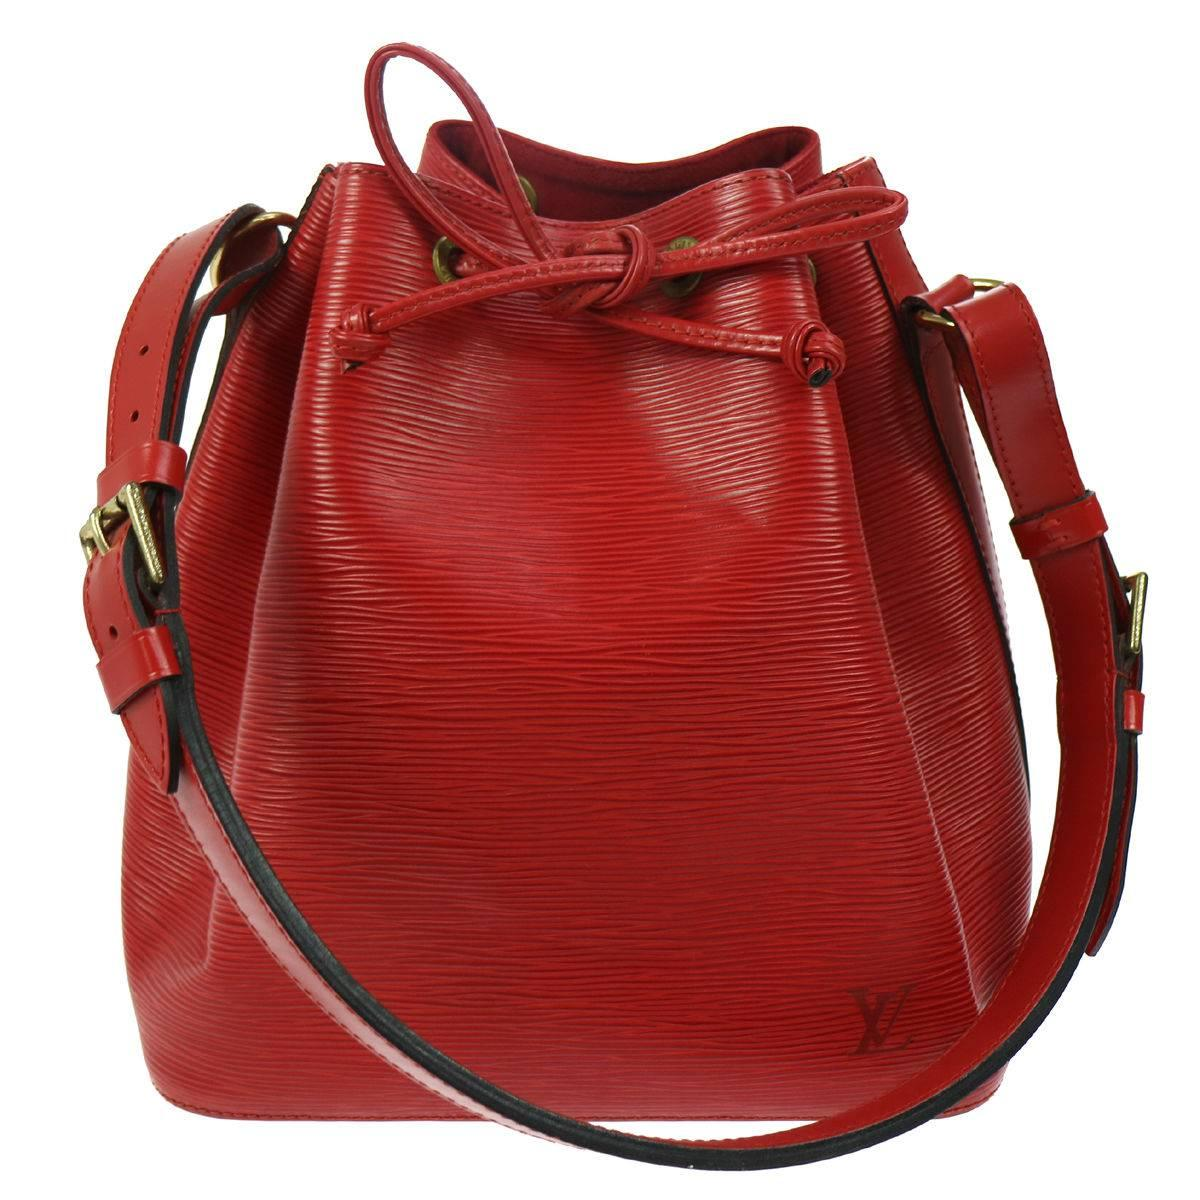 Louis Vuitton Red Leather Drawstring Bucket Hobo Tote Shoulder Bag UwIAJY